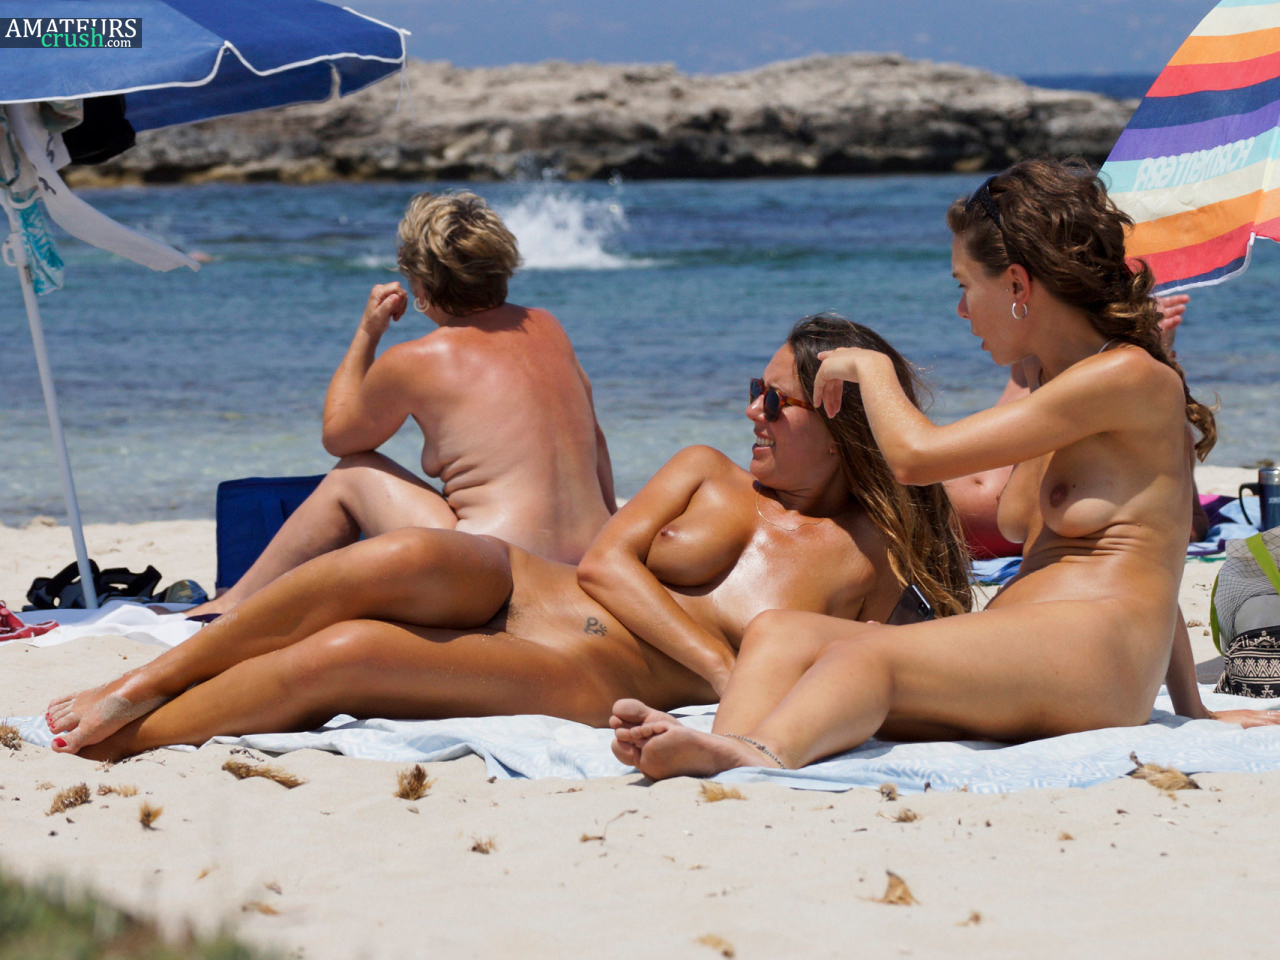 Nude photos at the beach